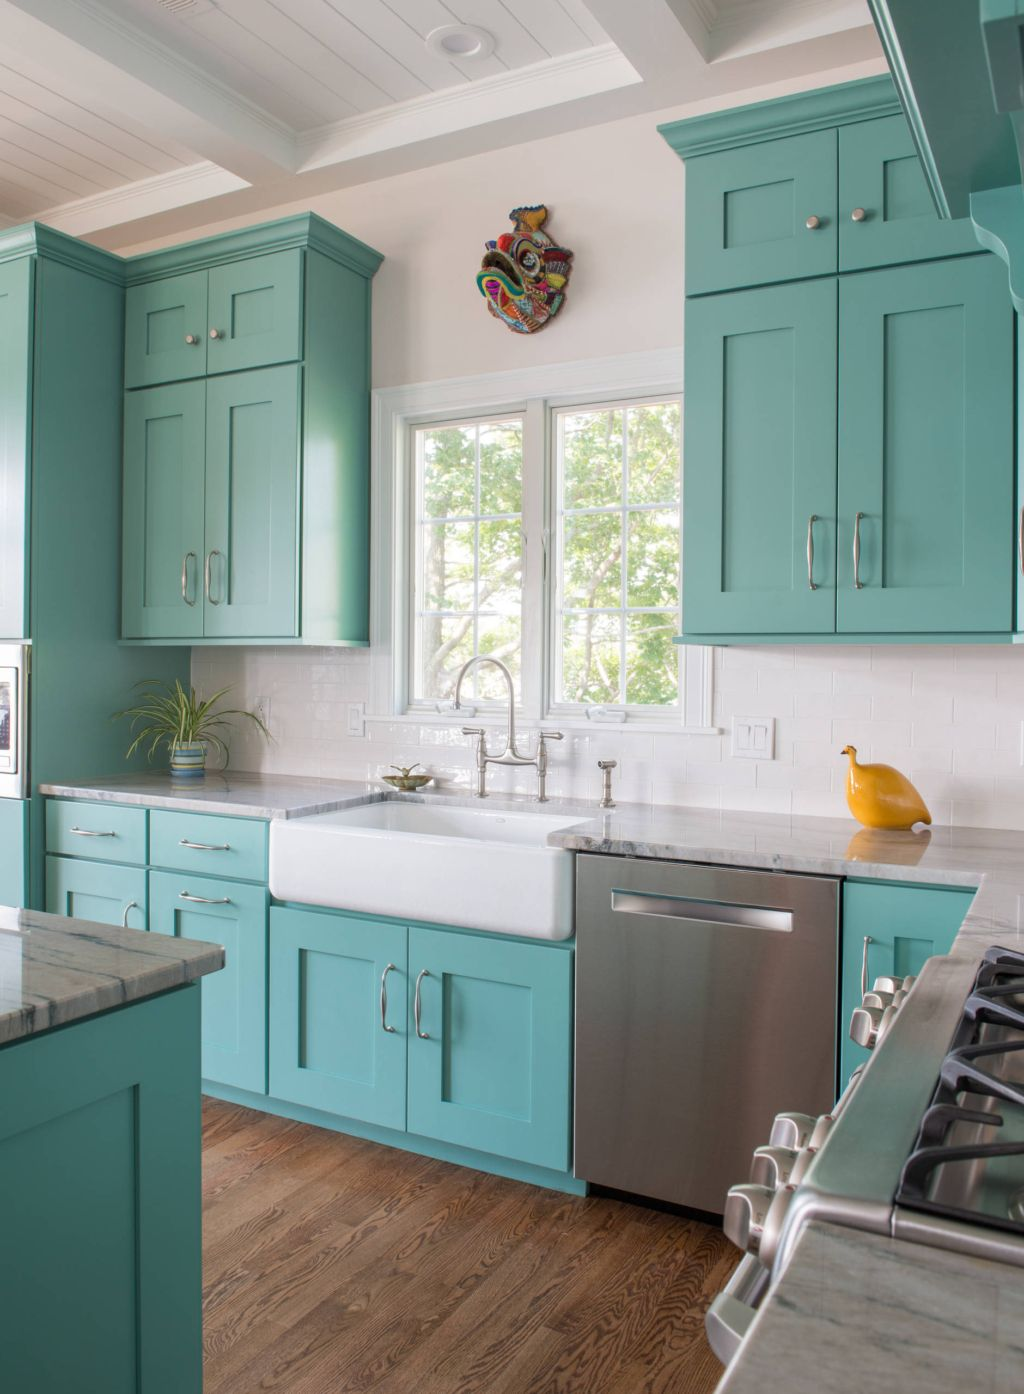 Mikayla Valois – Riverhead Building Supply | Pinterest | Turquoise ...